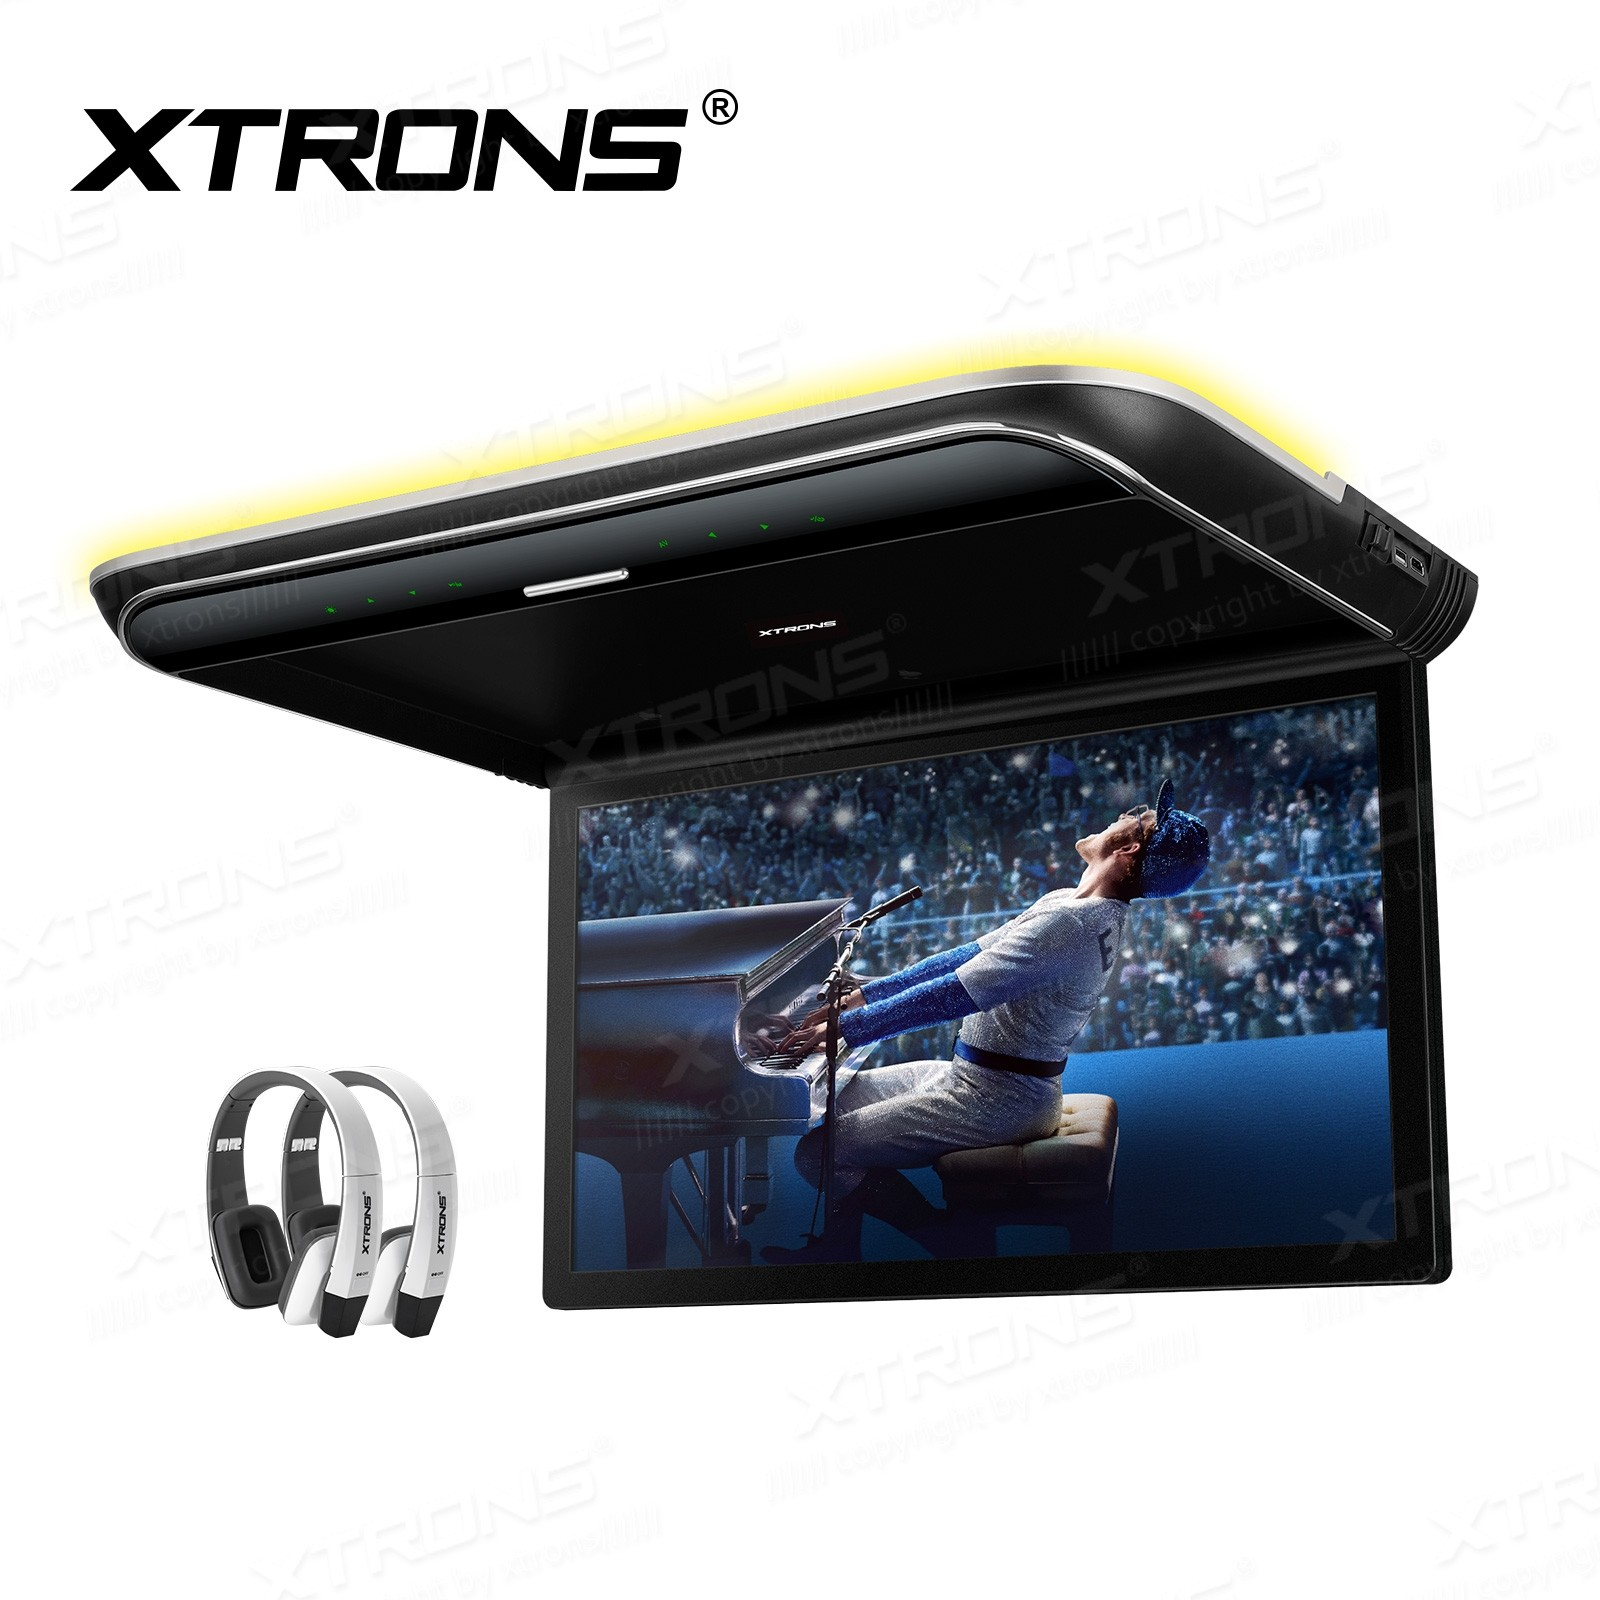 19.5 inch HD Digital TFT 16:9 Screen Ultra-thin Roof Mounted Player with Built-in Speakers and Colourful Aura Light & 2pcs headphones